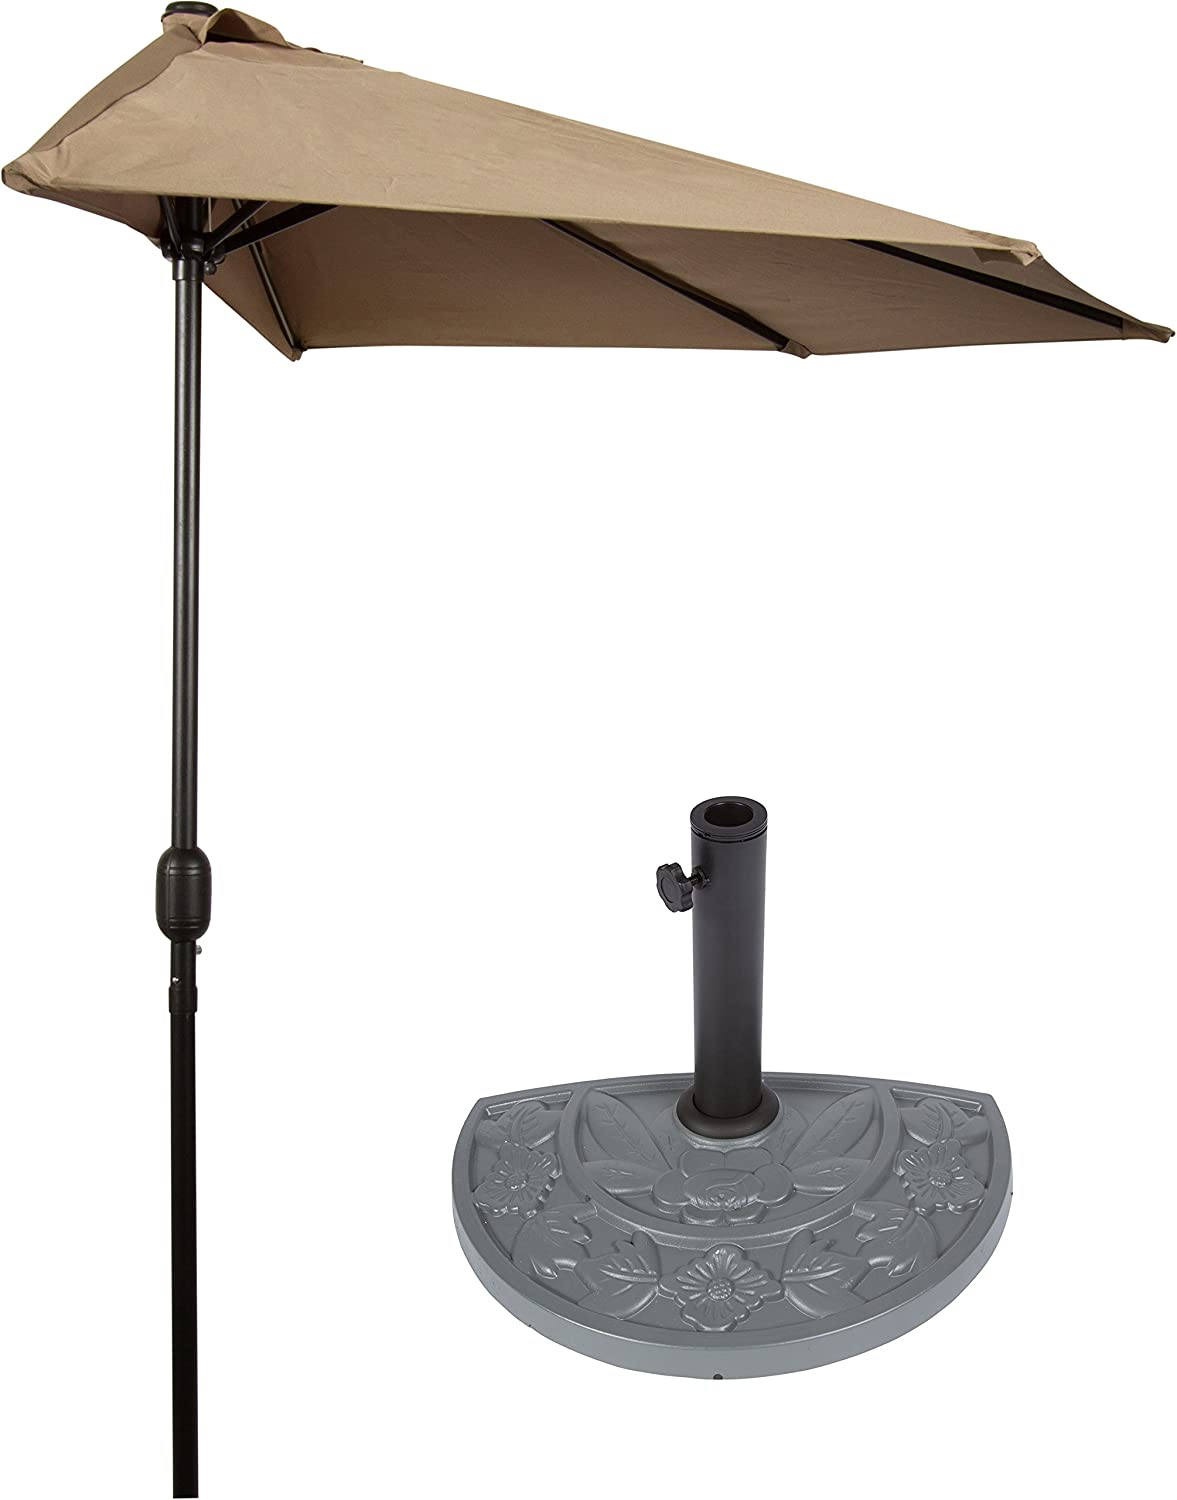 Trademark Innovations 9 Patio Half Umbrella with Gray Floral Half-Base Tan